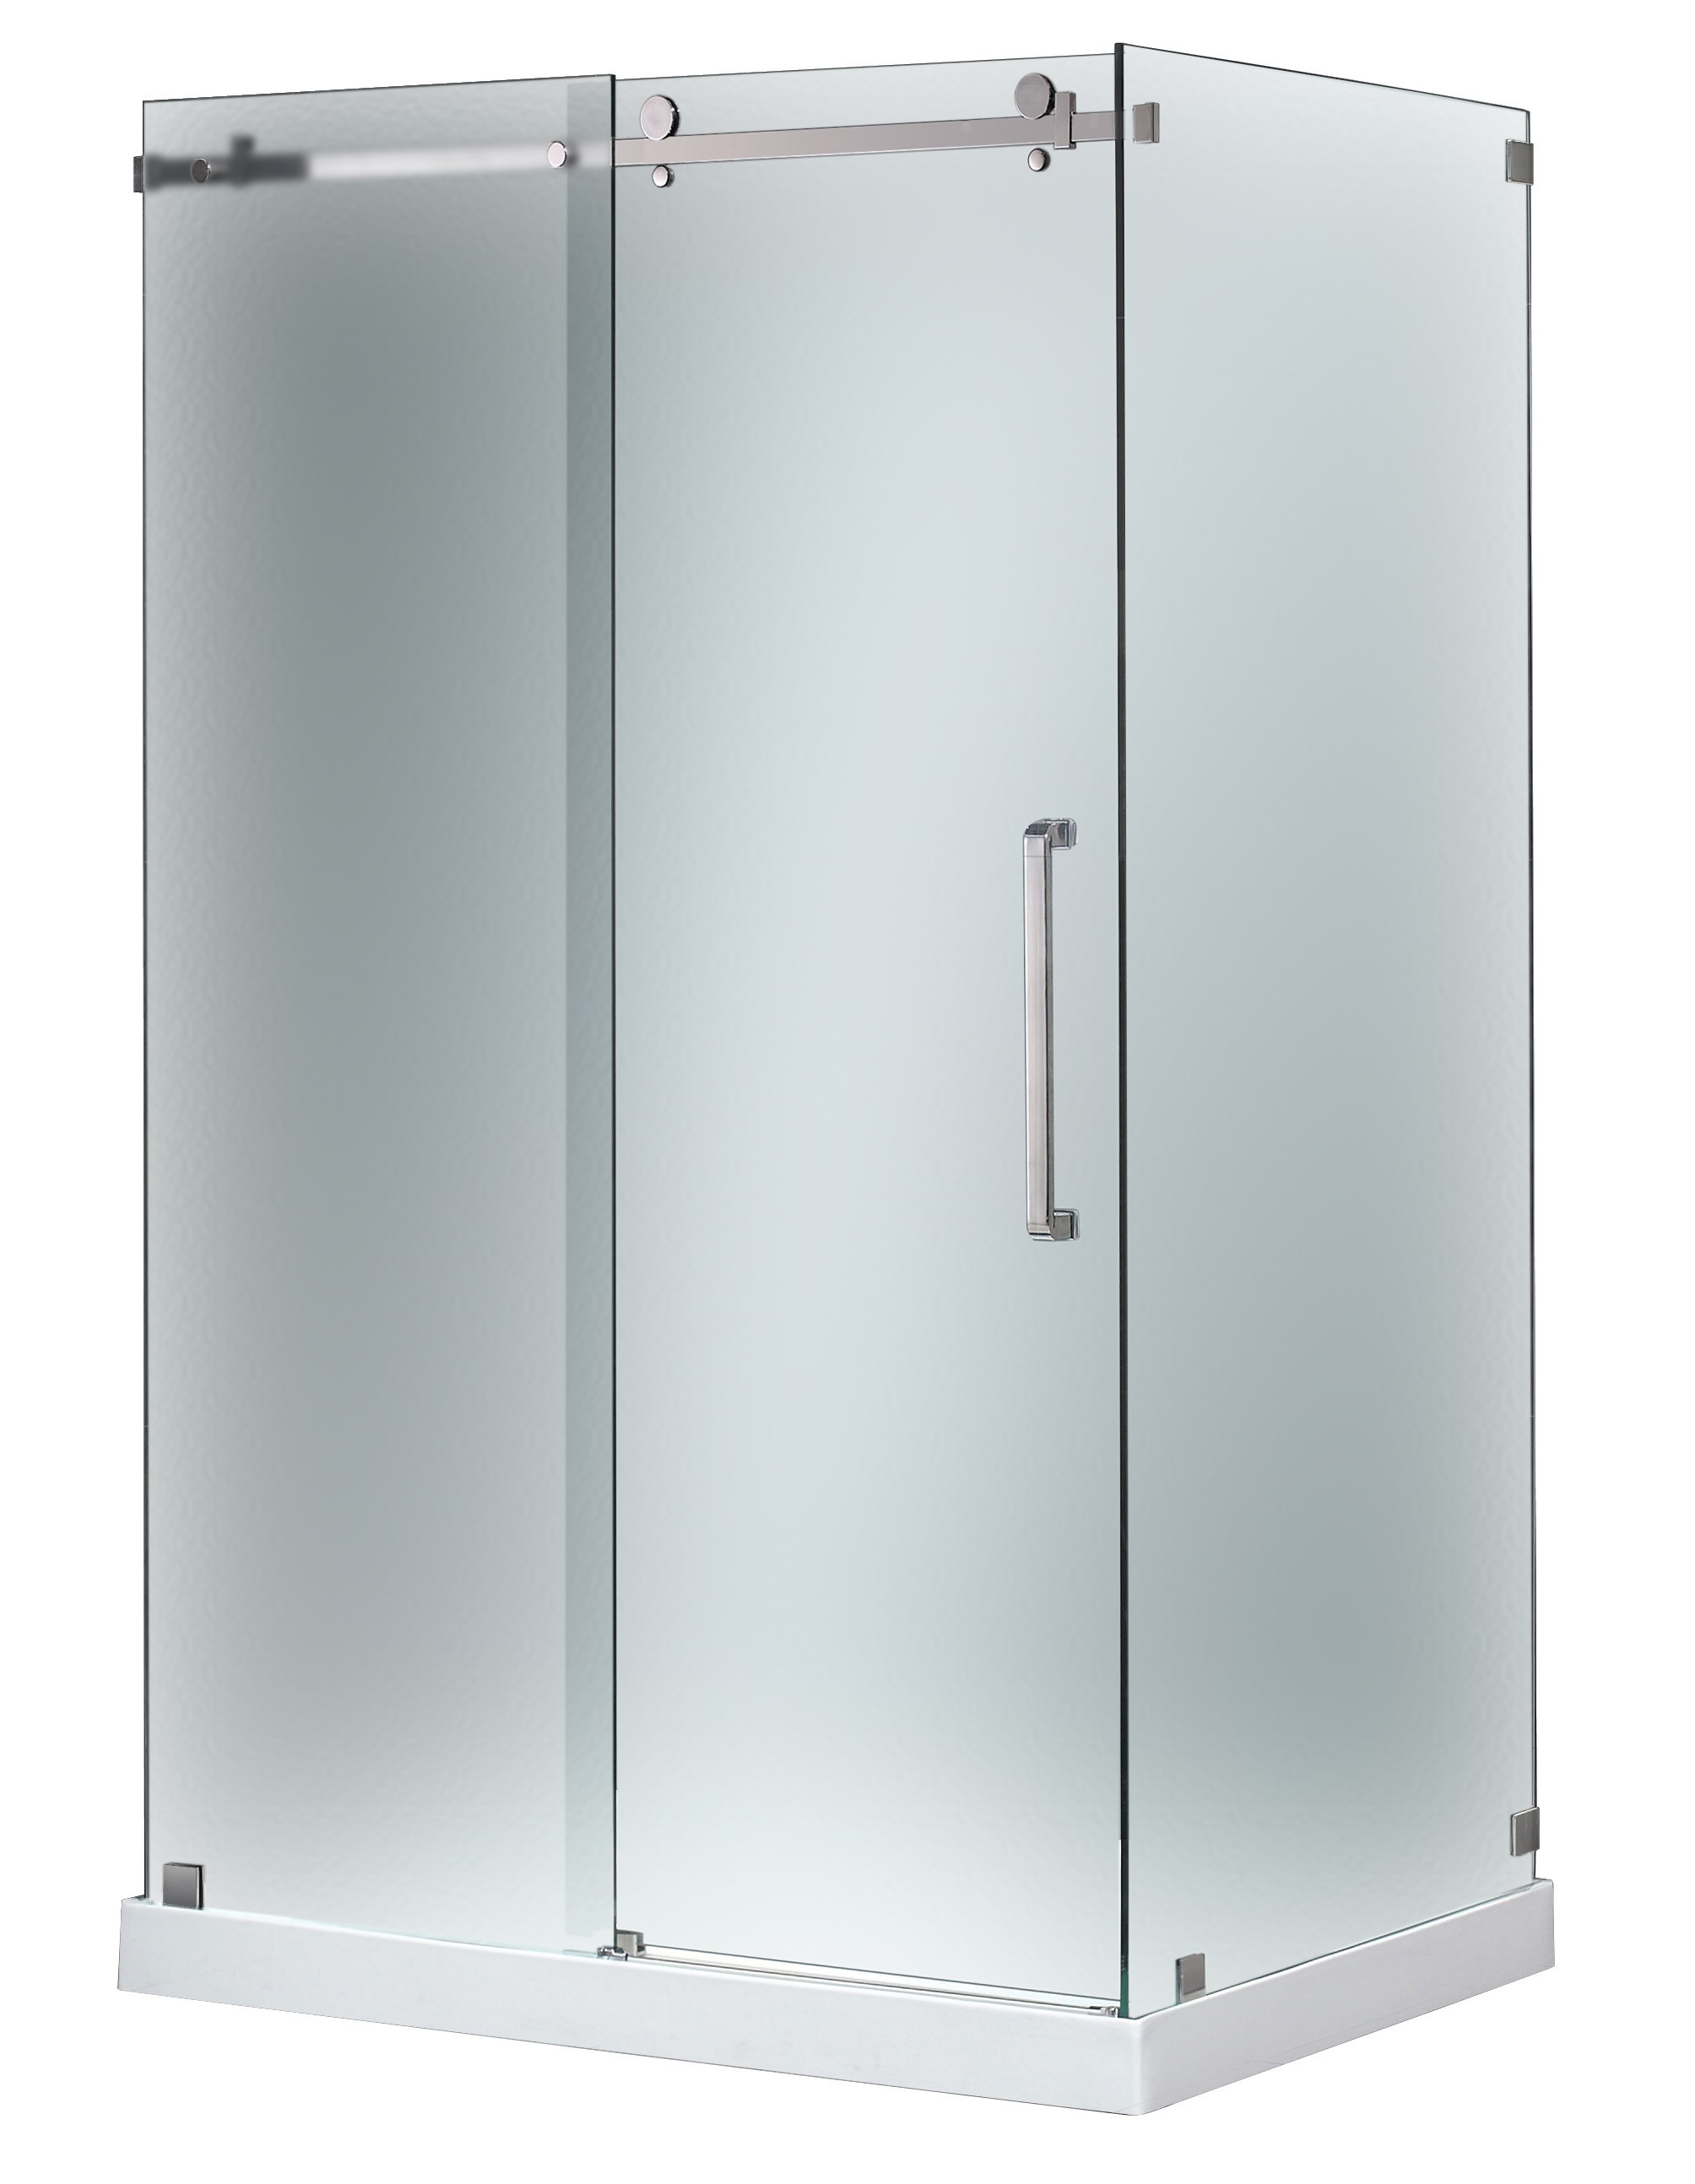 Aston Global SEN976F-TR-CH-48-10-R Sliding Shower Door Enclosure In Chrome with Base Right Drain